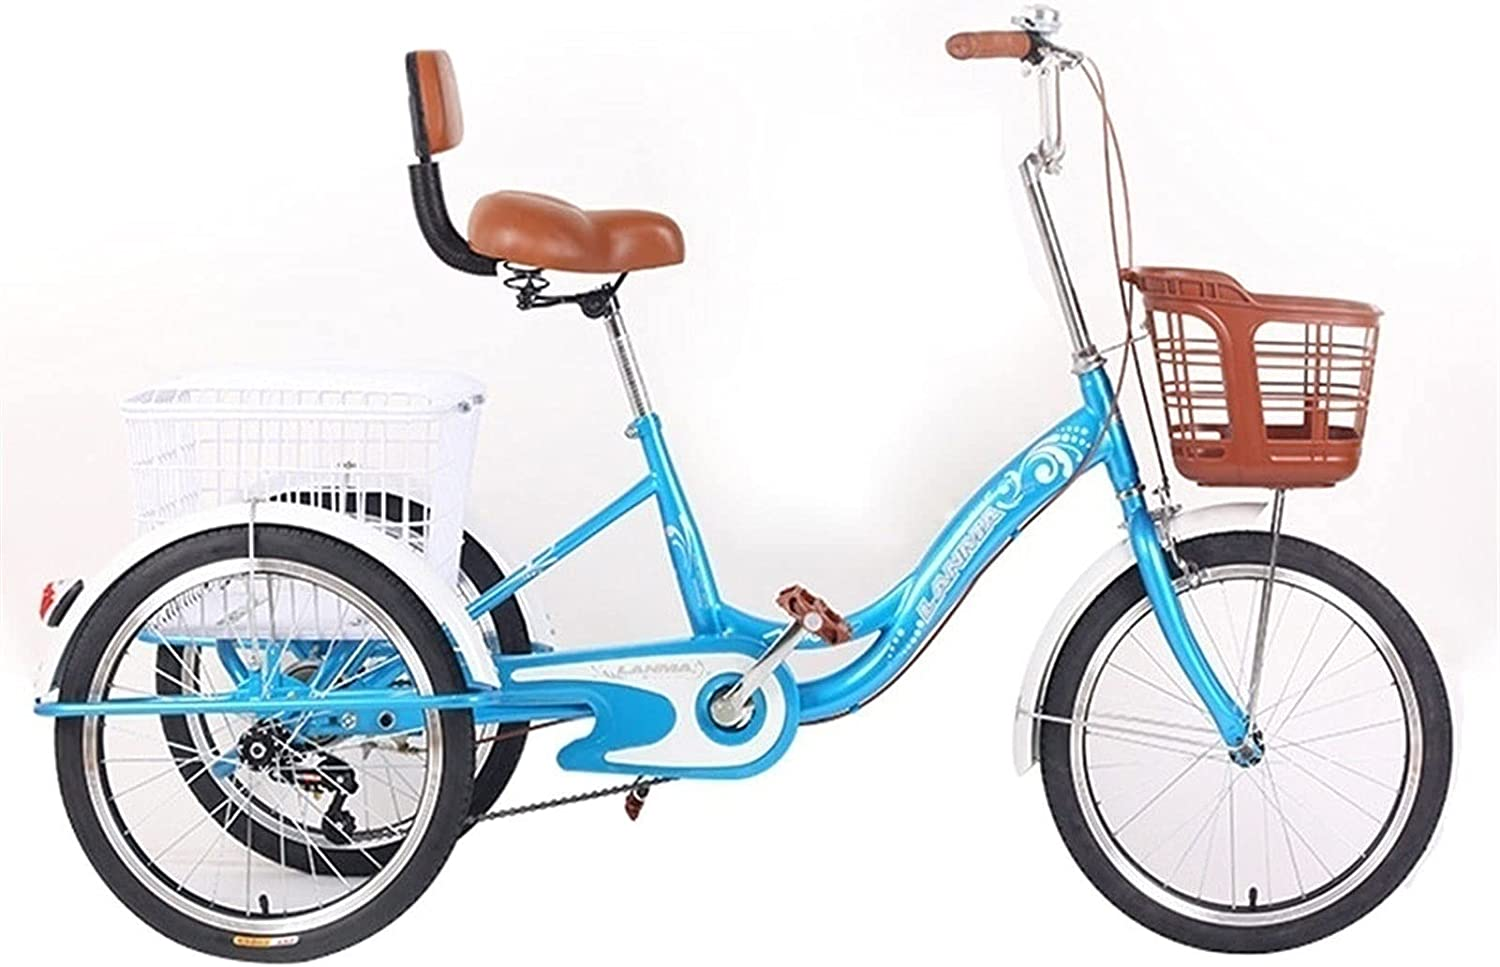 Stable Tricycle Adult 20inch half Elderly 3 Wheel Bicycle B Tricycles Max 80% OFF